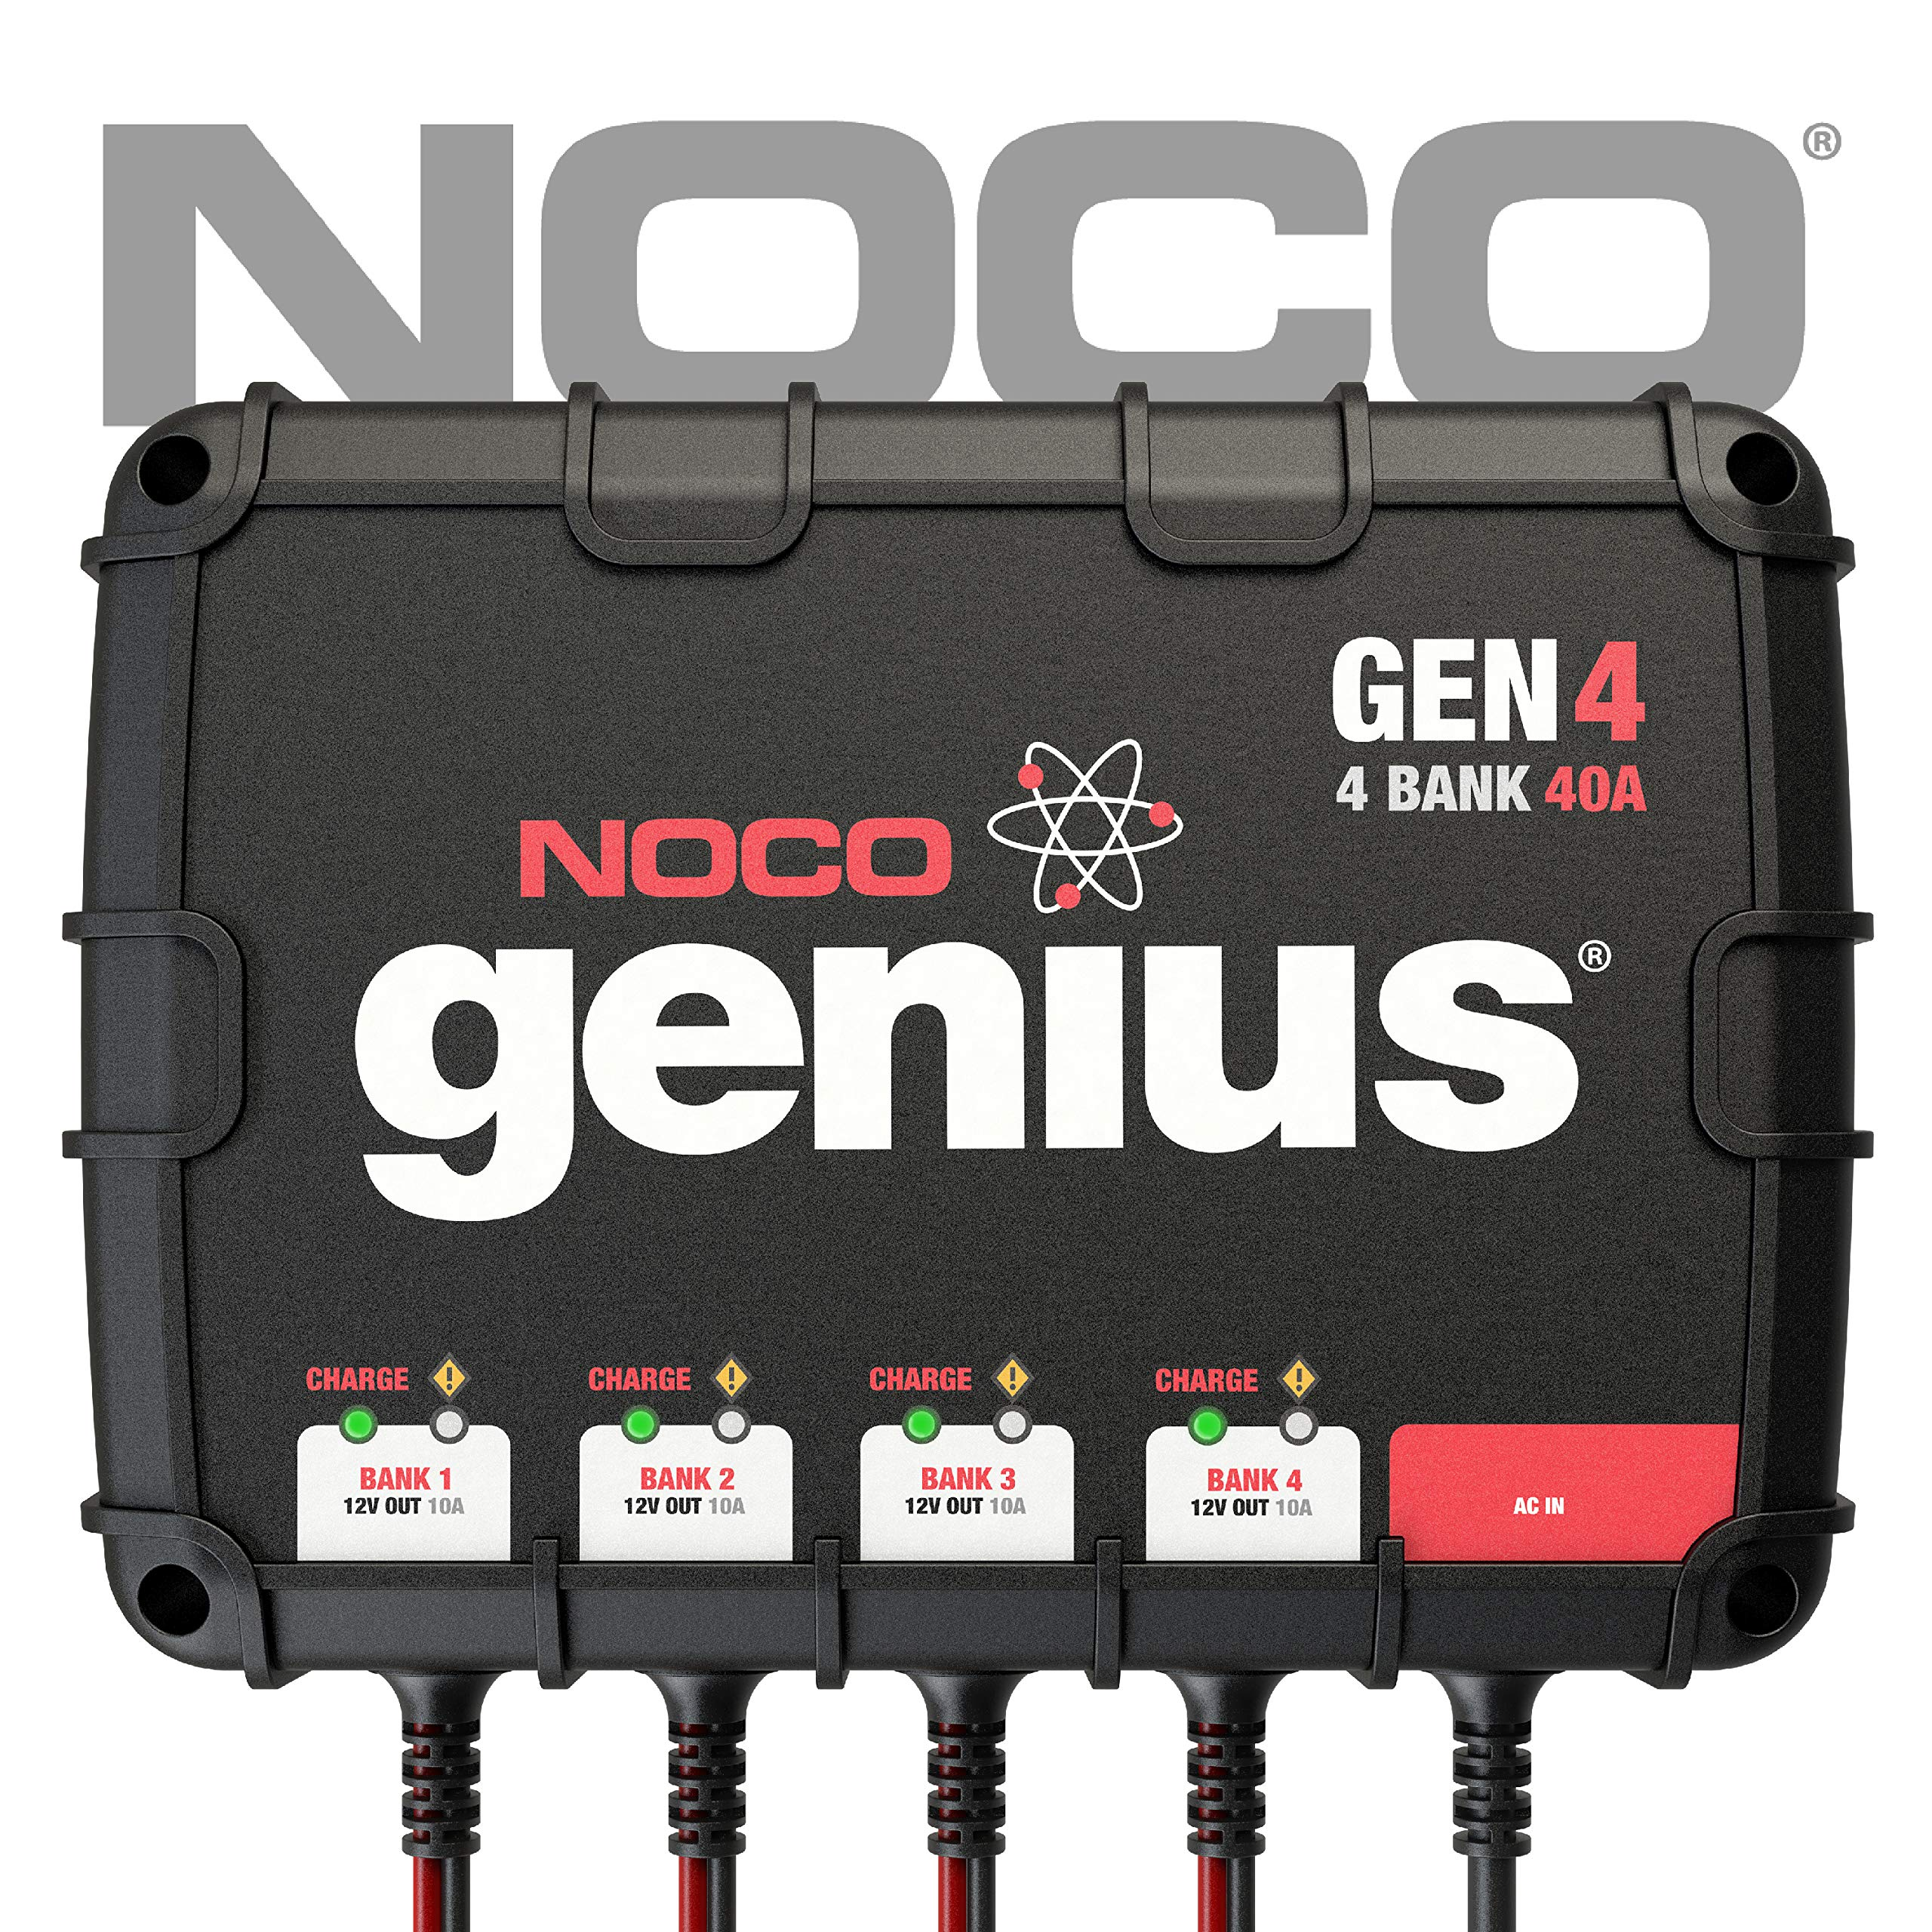 NOCO Genius GEN4 40 Amp 4-Bank On-Board Battery Charger by NOCO